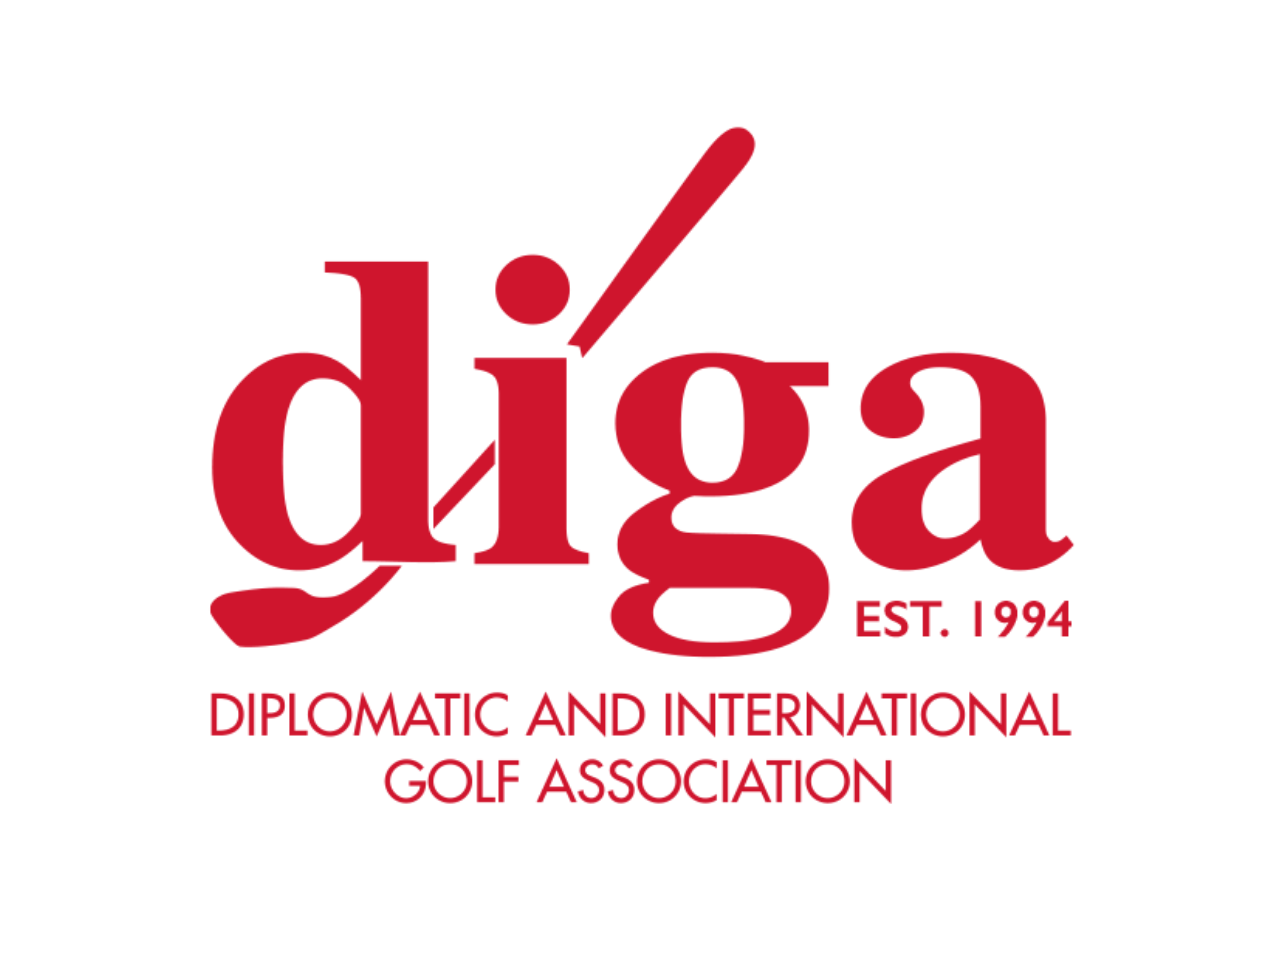 Diga_1280x960_rounded